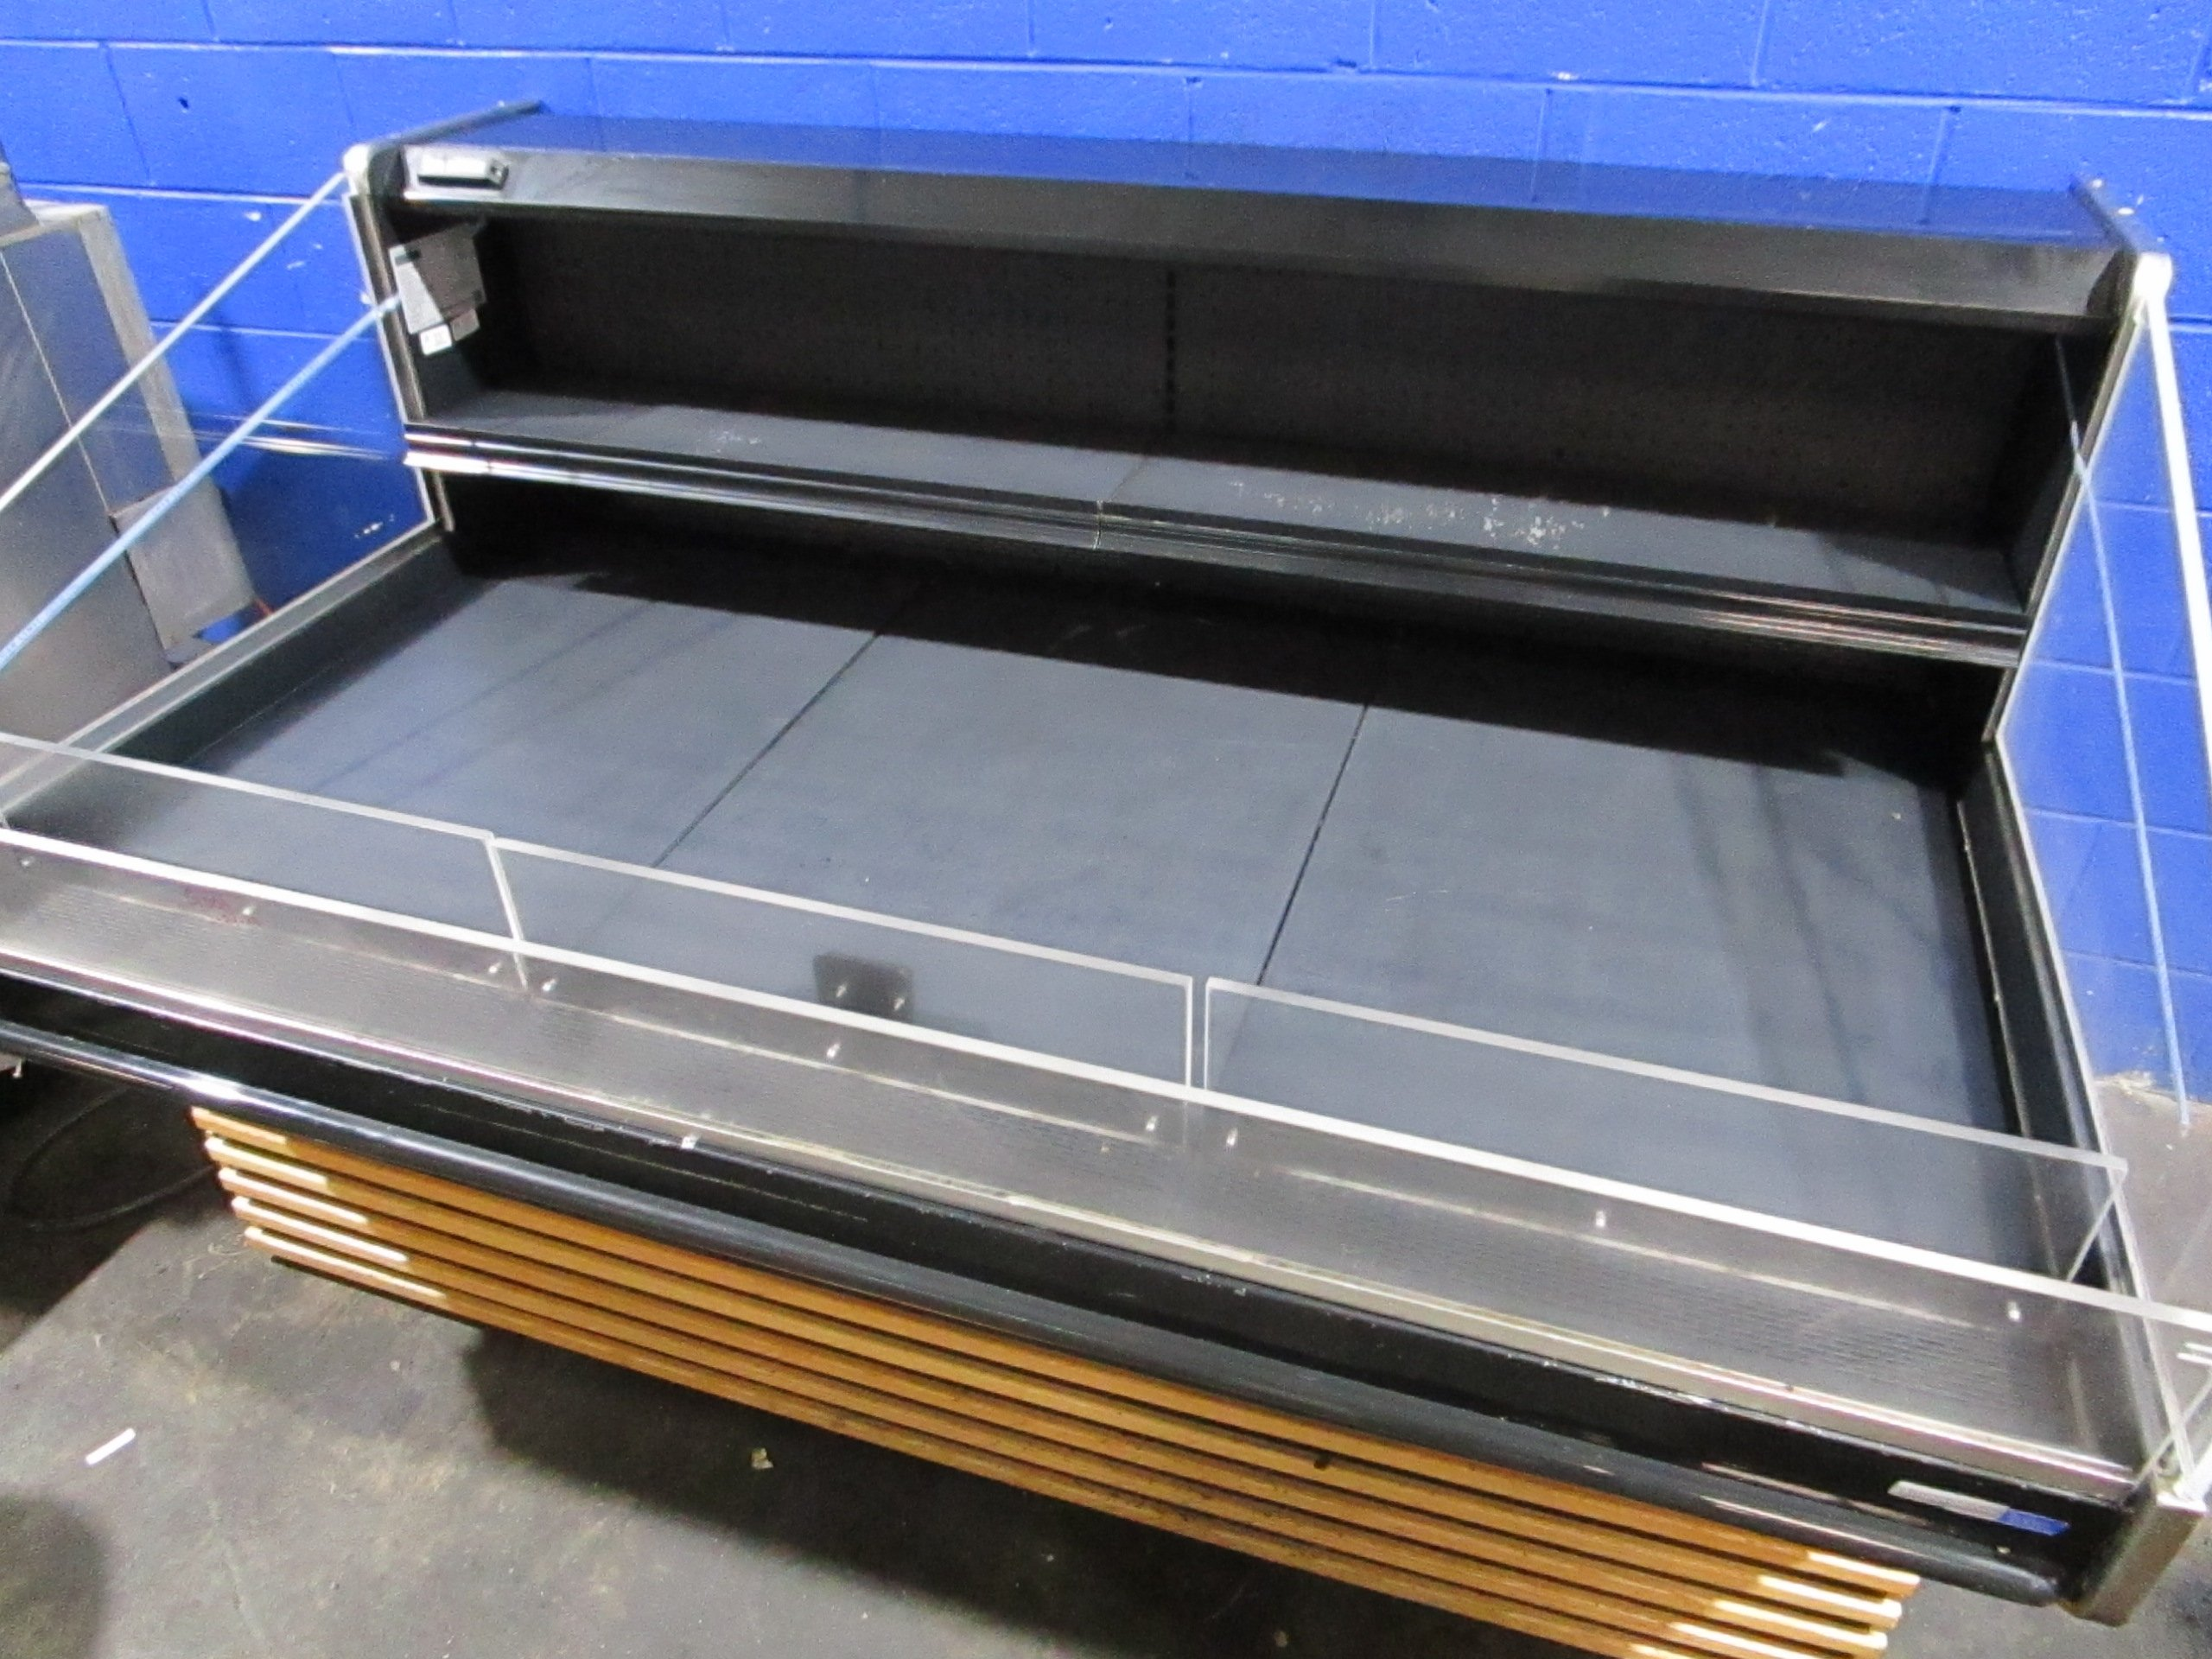 "BARKER  HSC6 74"" OPEN TOP GRAB AND GO COOLER REFRIGERATED MERCHANDISER CASE 2015"